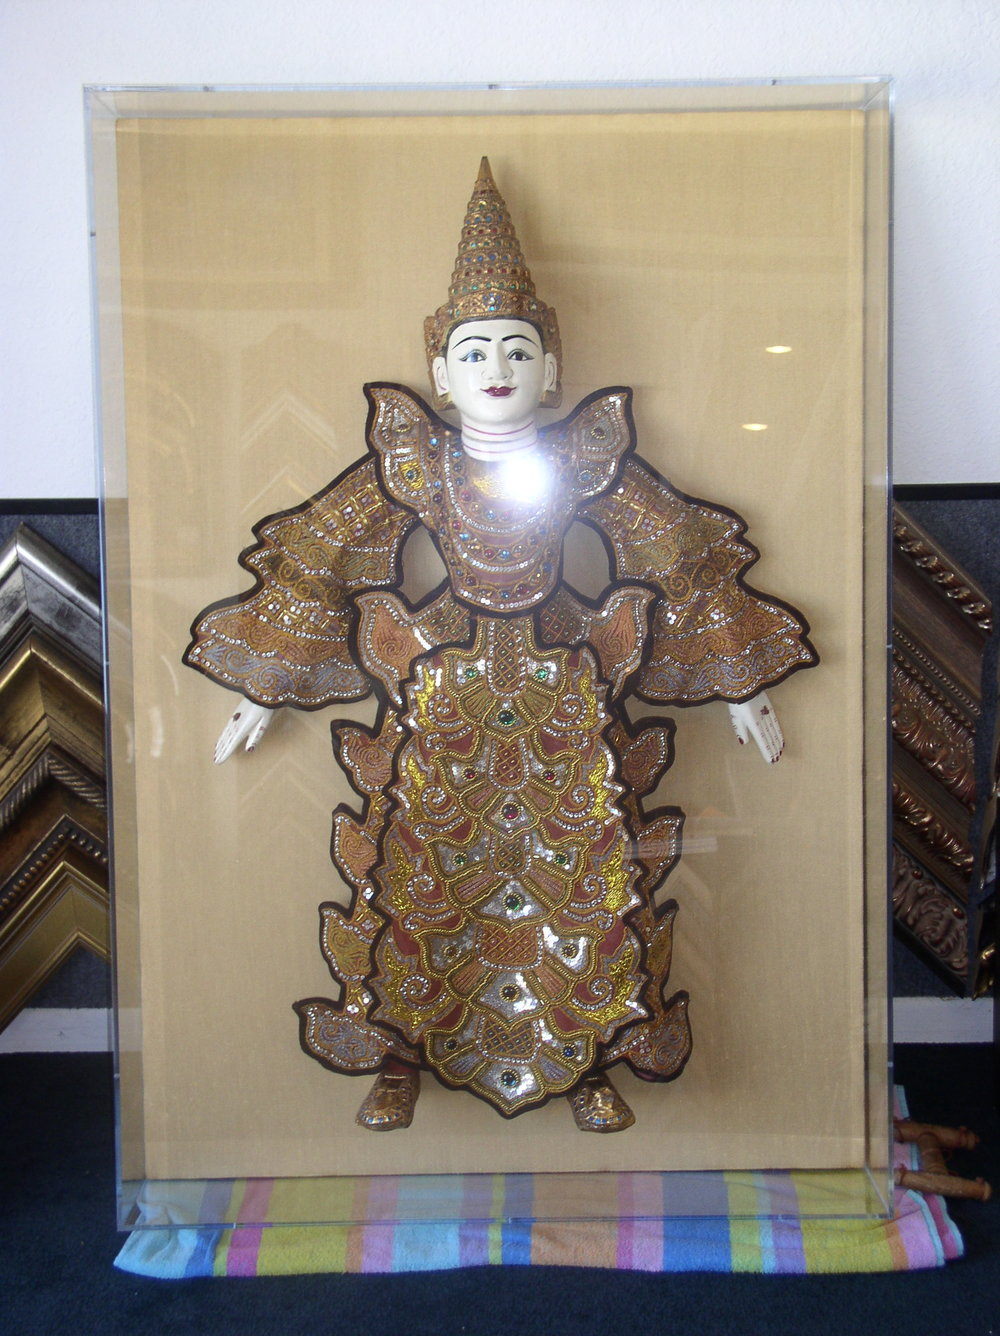 Puppet from Thailand in Plexiglas Box